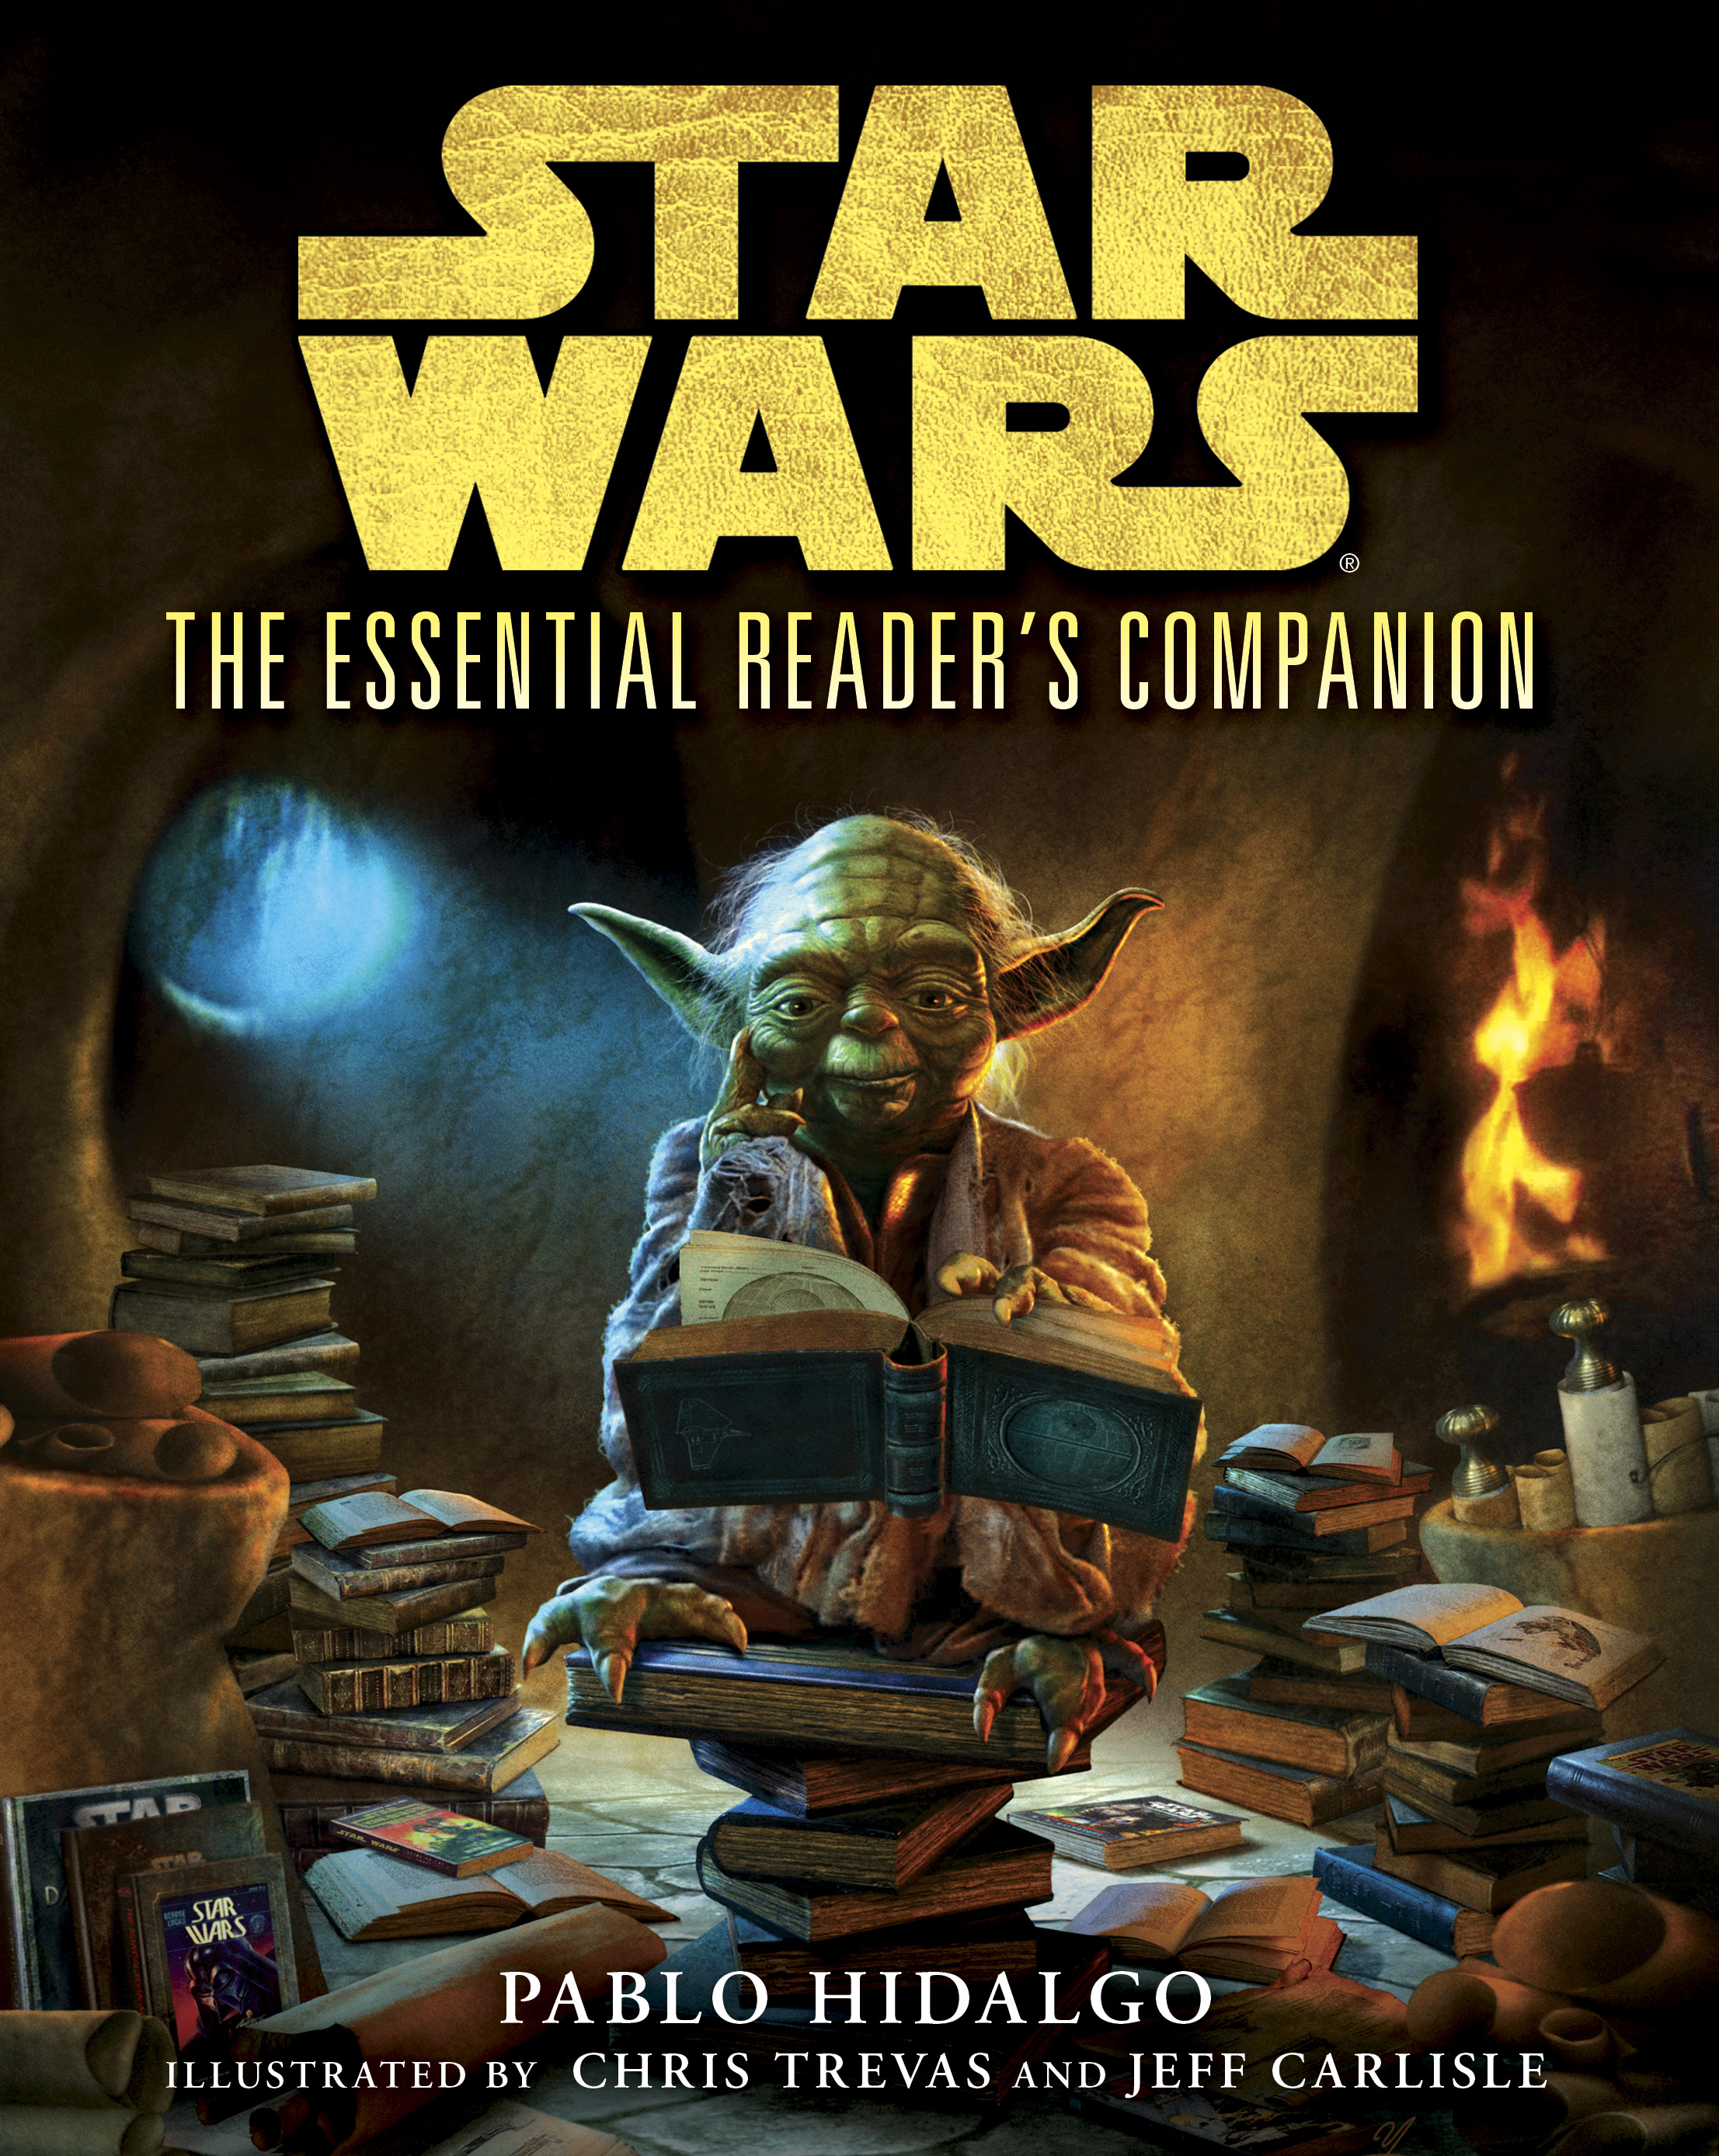 the essential reader's companion | wookieepedia | fandom powered by